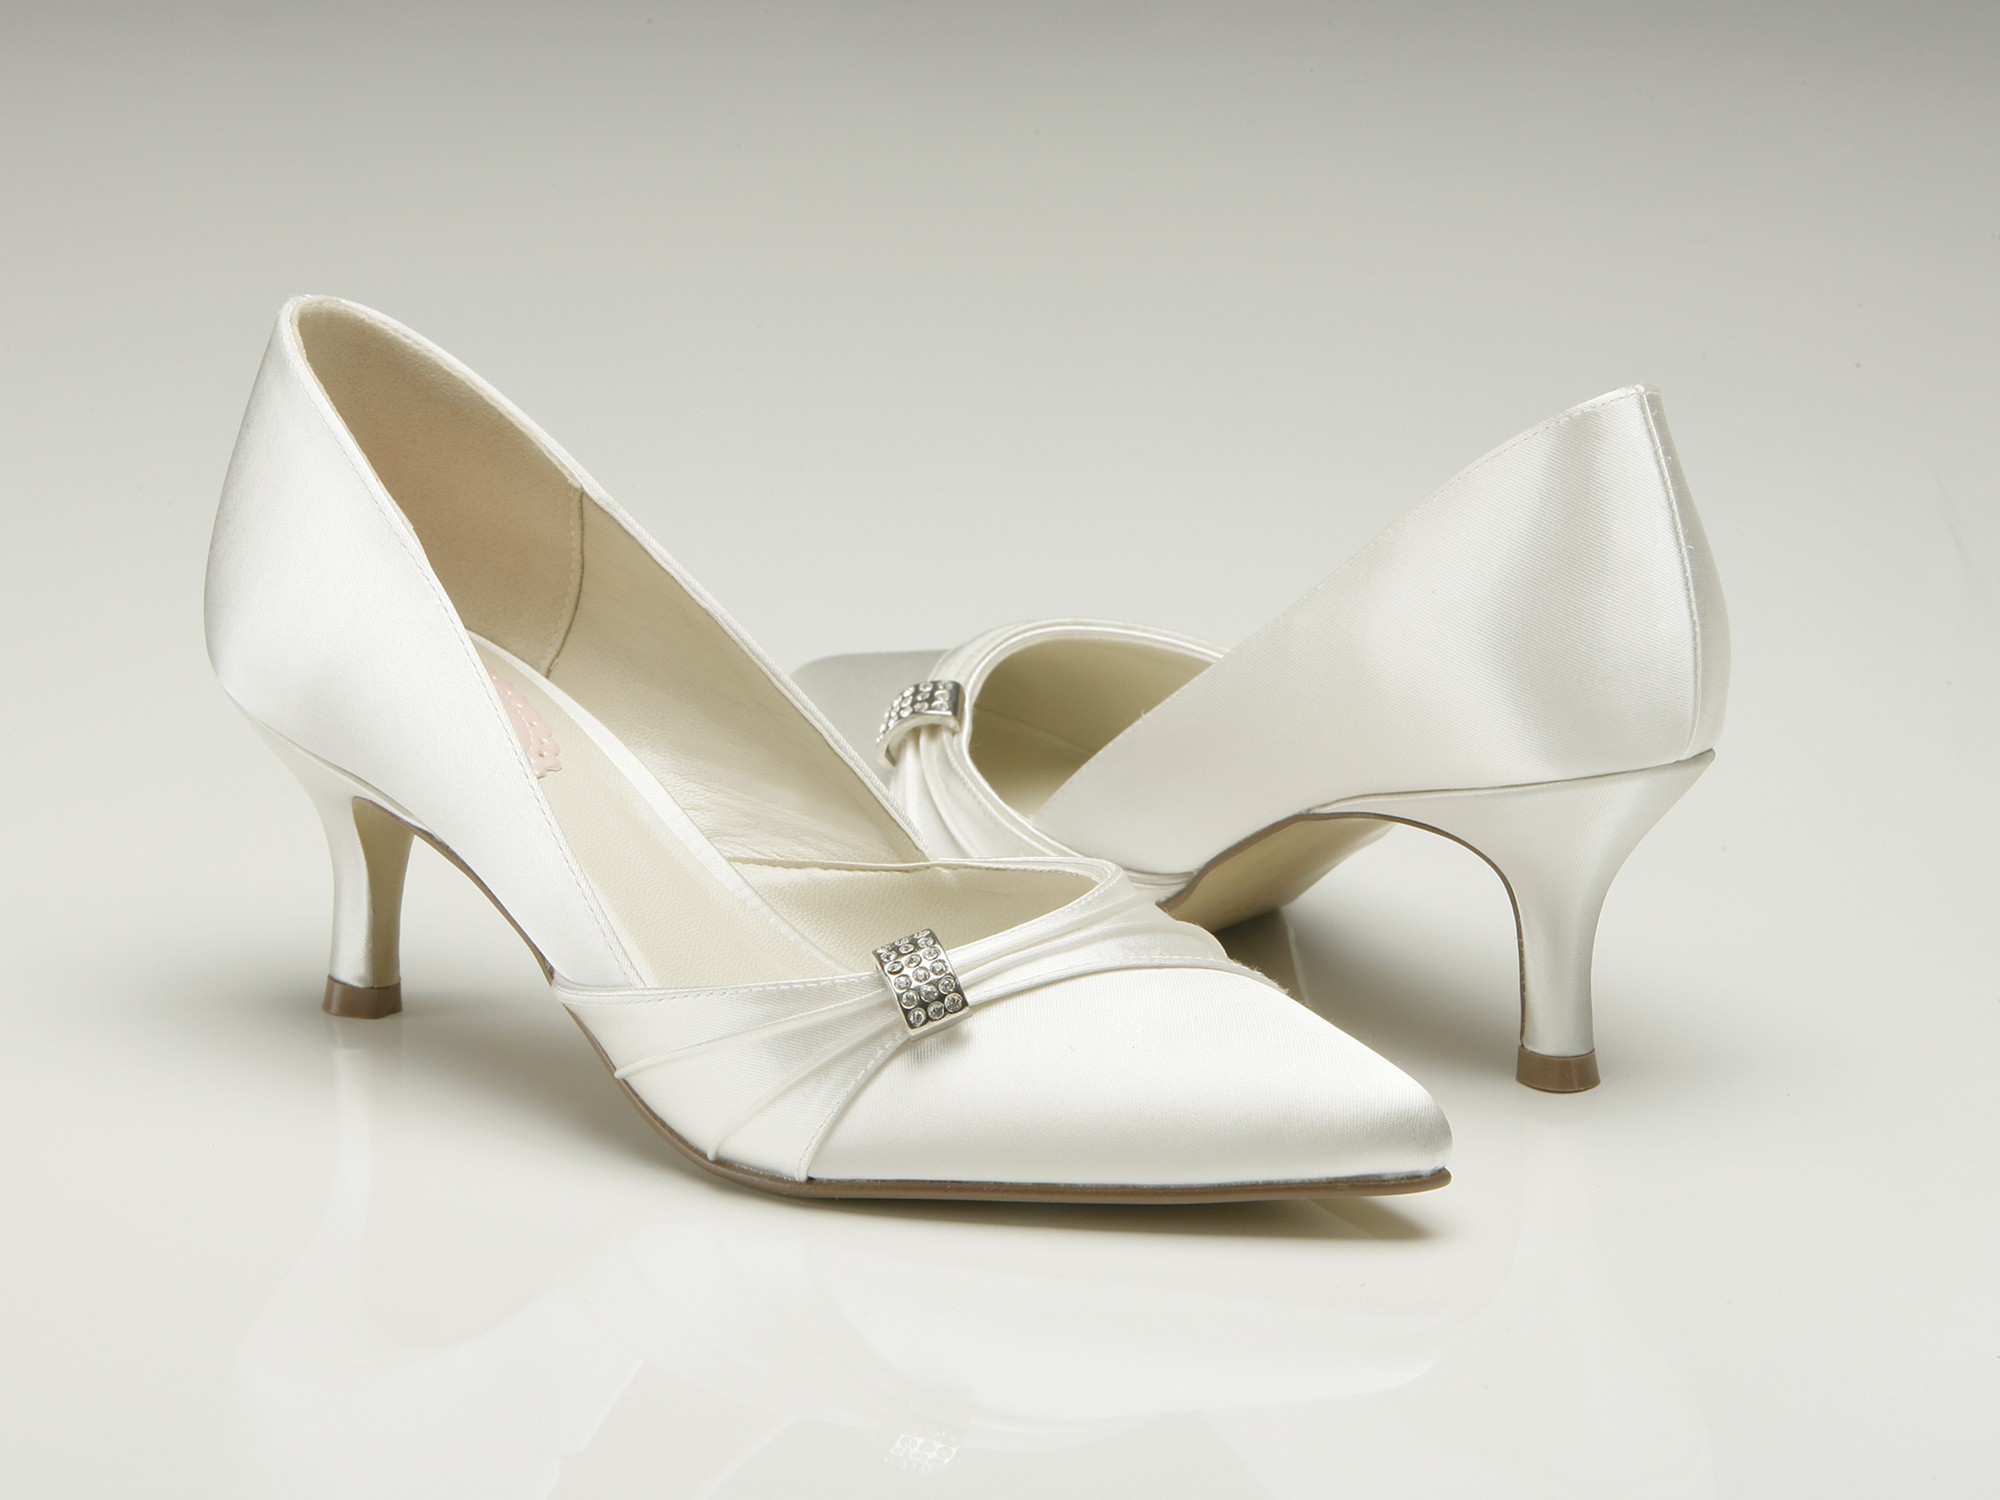 Silver Low Heel Shoes For Wedding Florida Photo Magazine Com